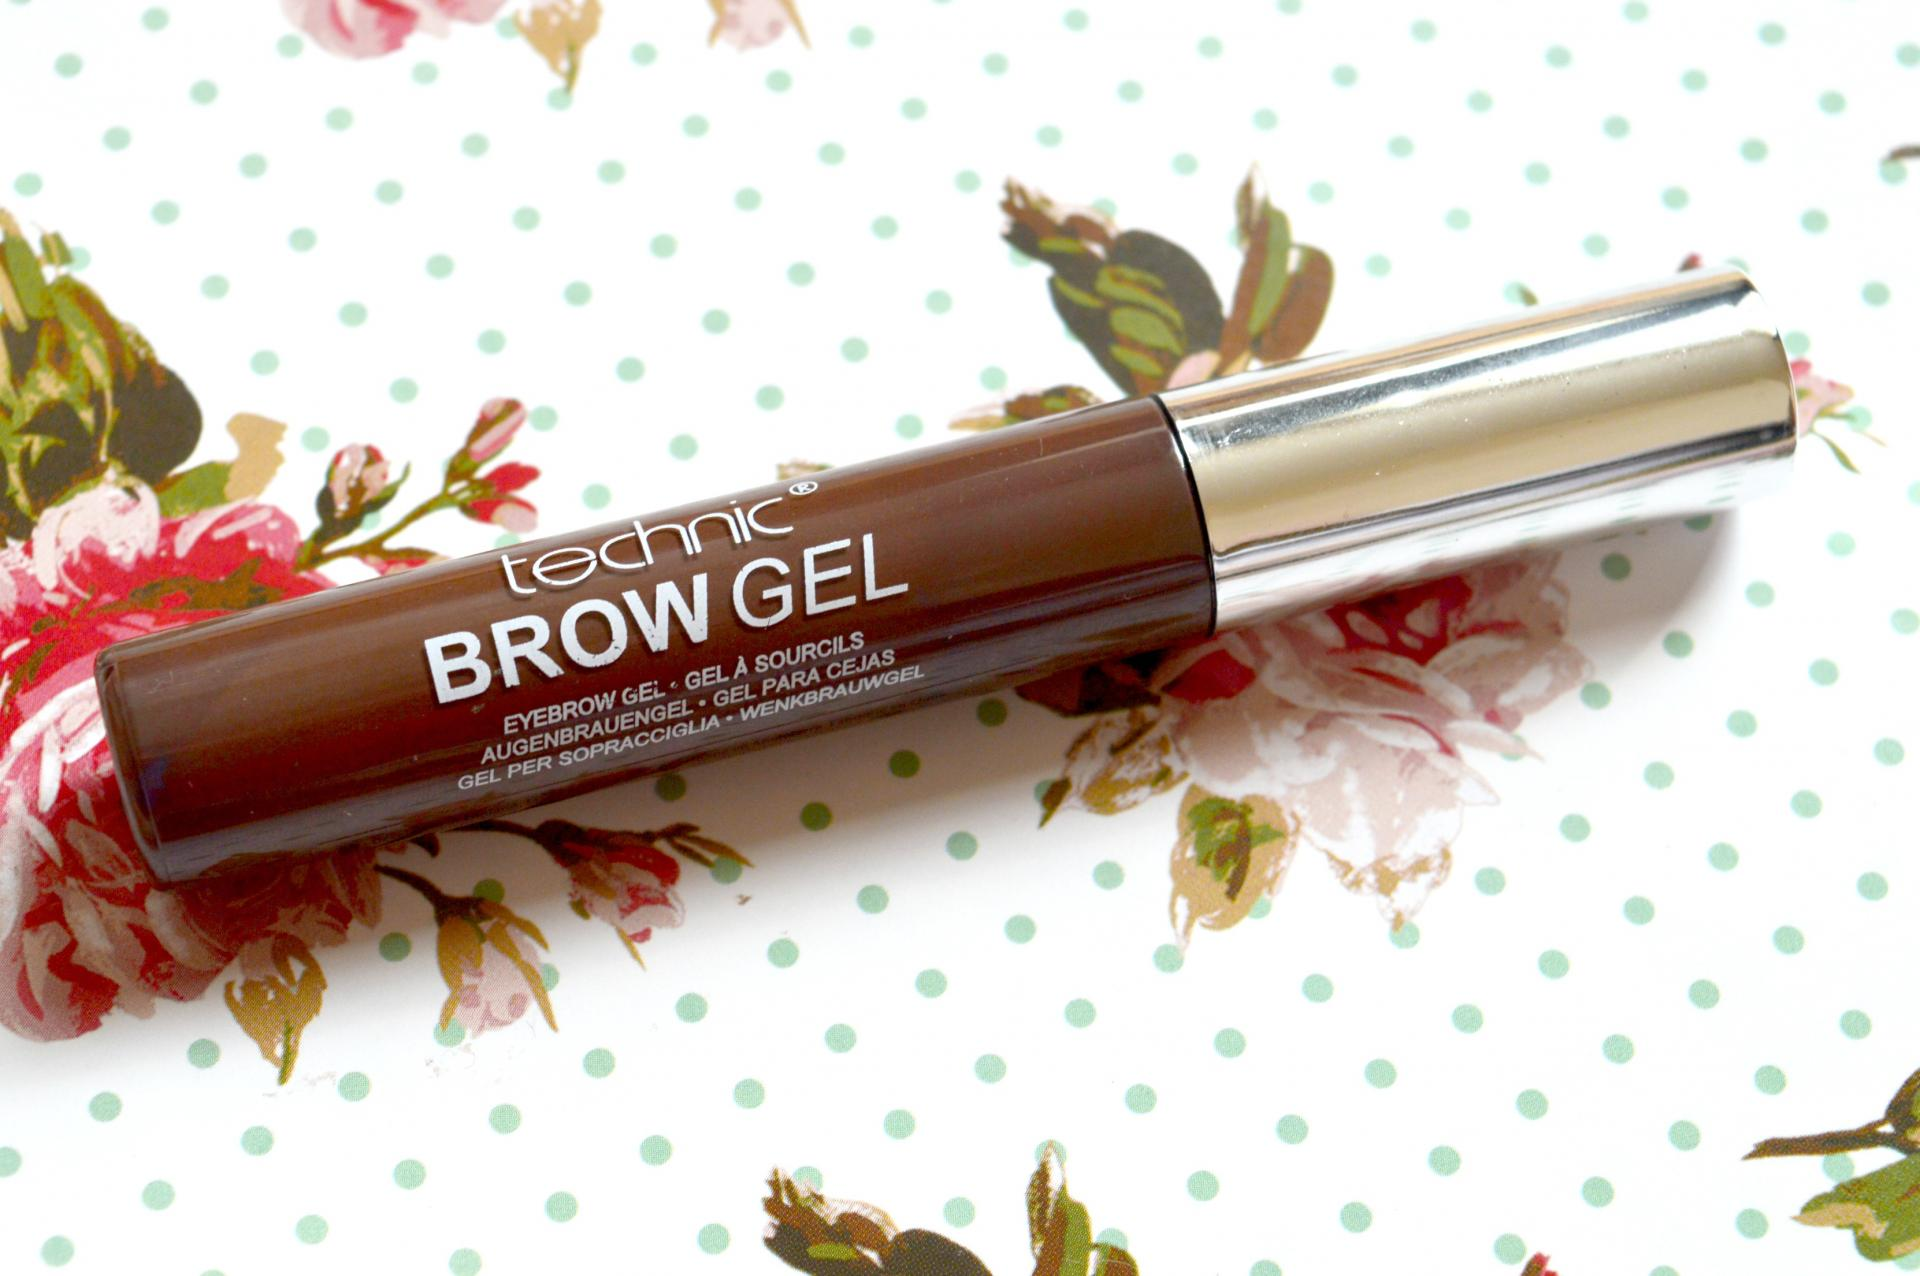 Technic Brow Gel in Medium